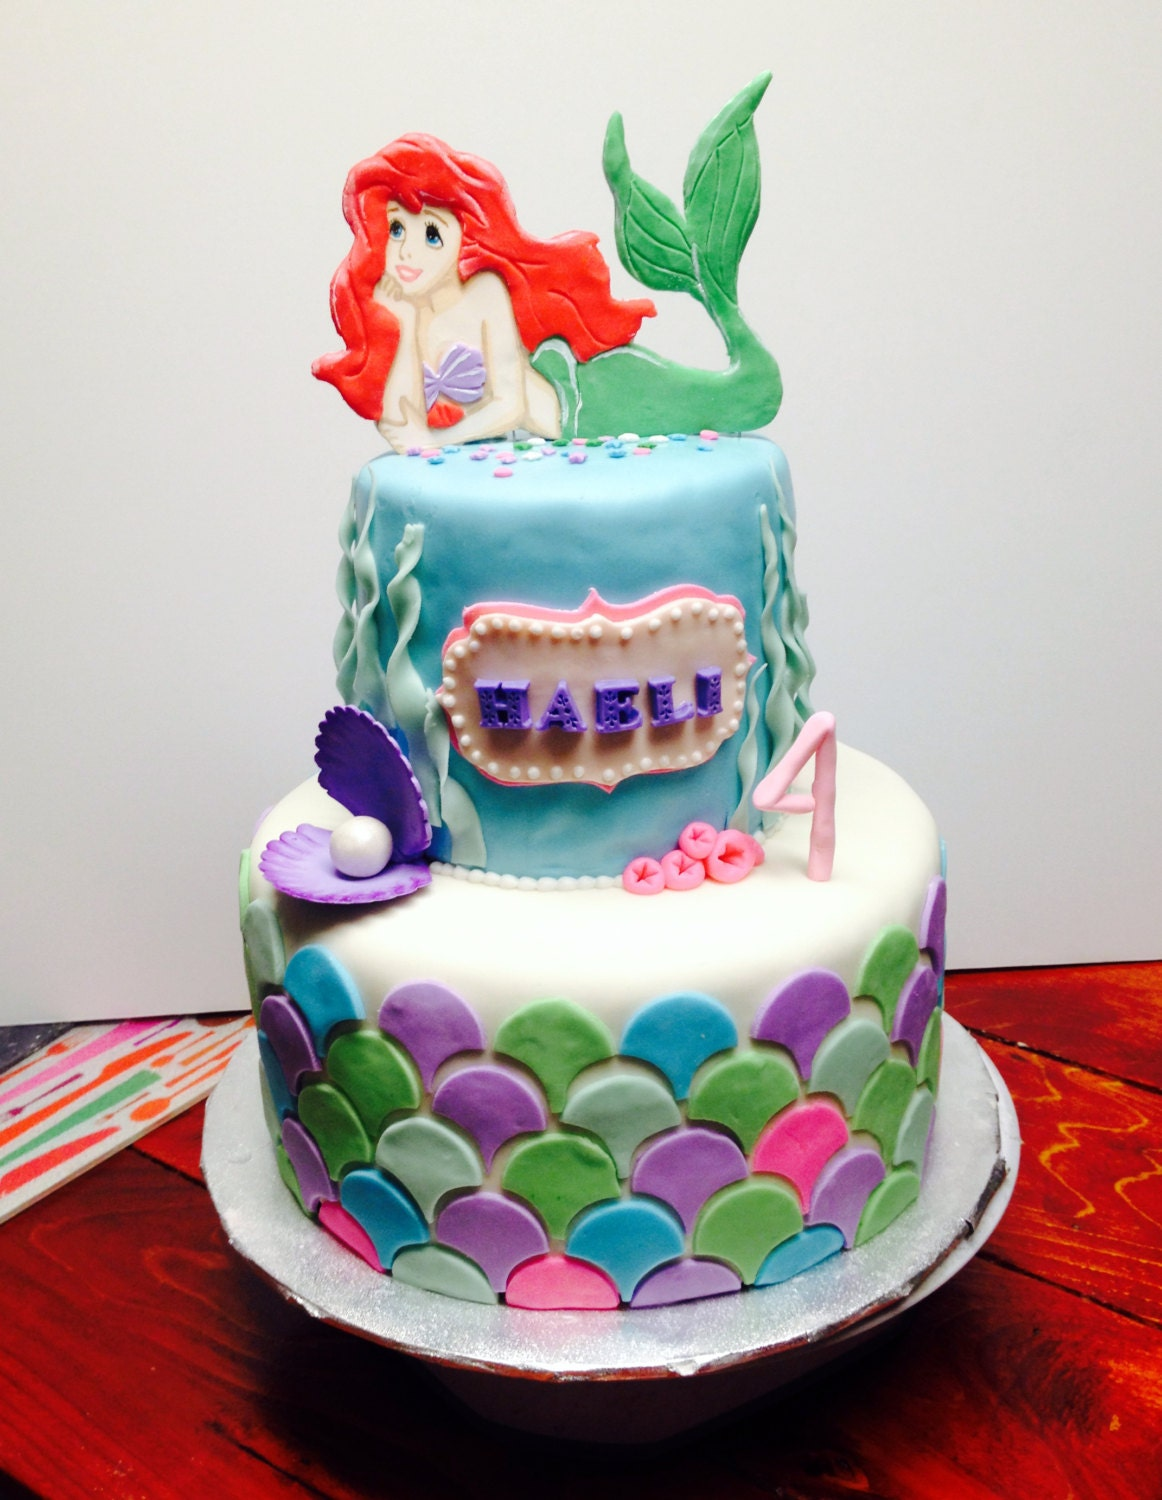 Little Mermaid Cake Decorating Kit